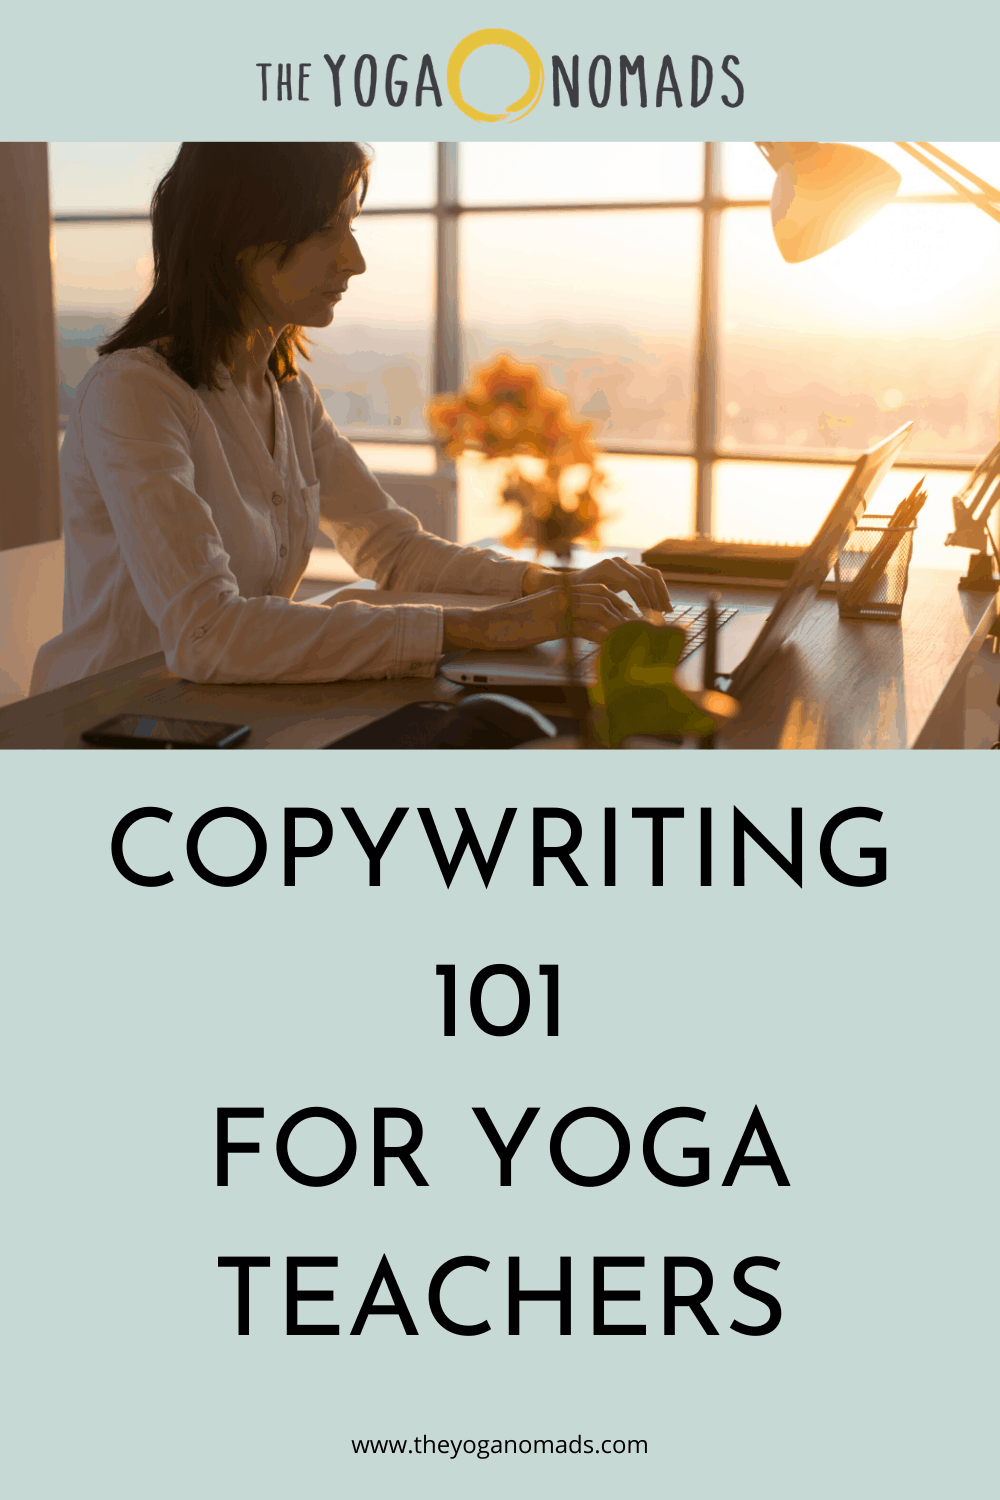 Copywriting 101 for Yoga Teachers